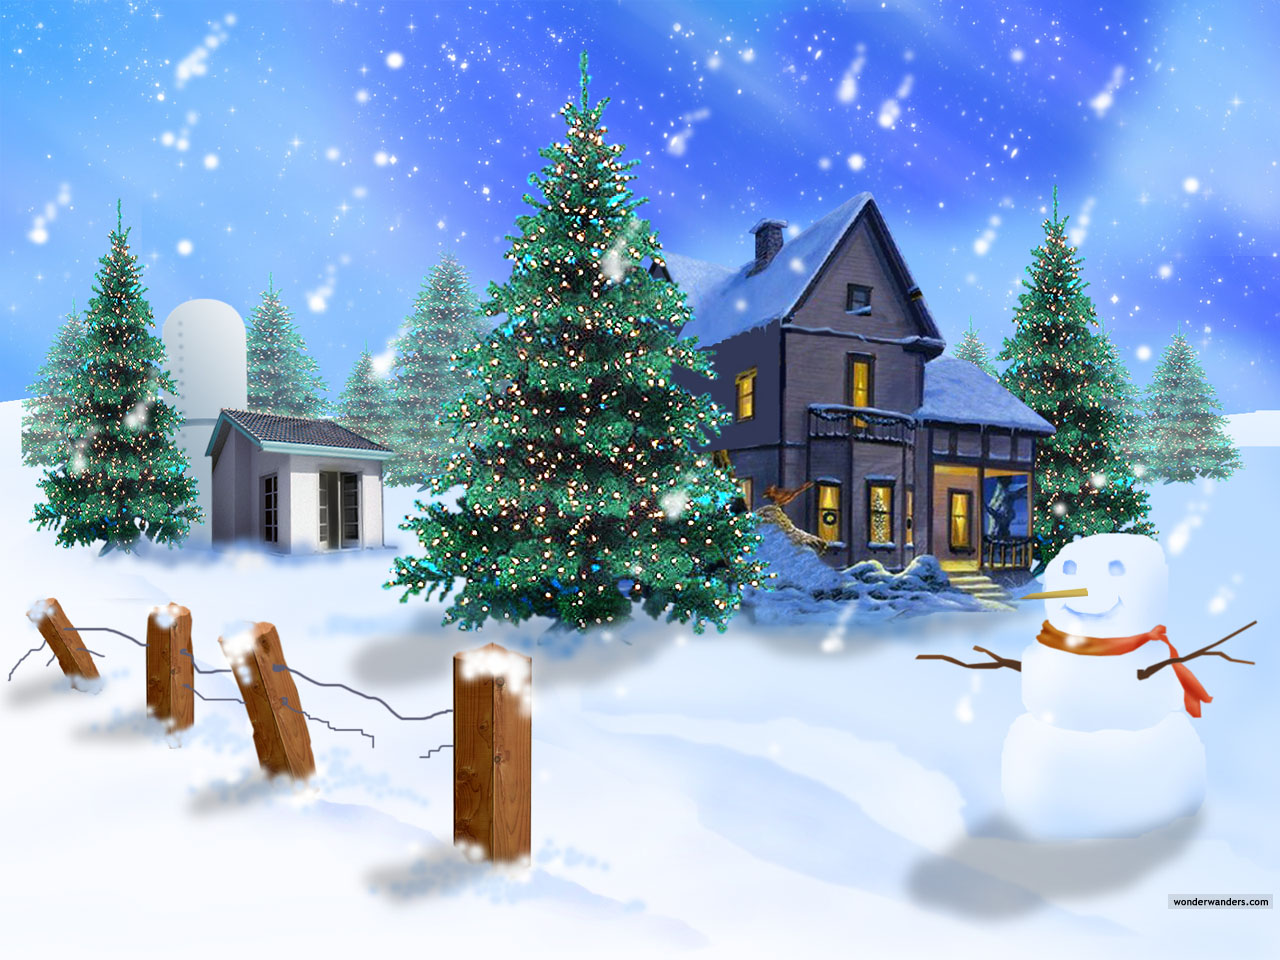 Free Christmas wallpaper | HD Wallpaper – High Definition Wallpapers